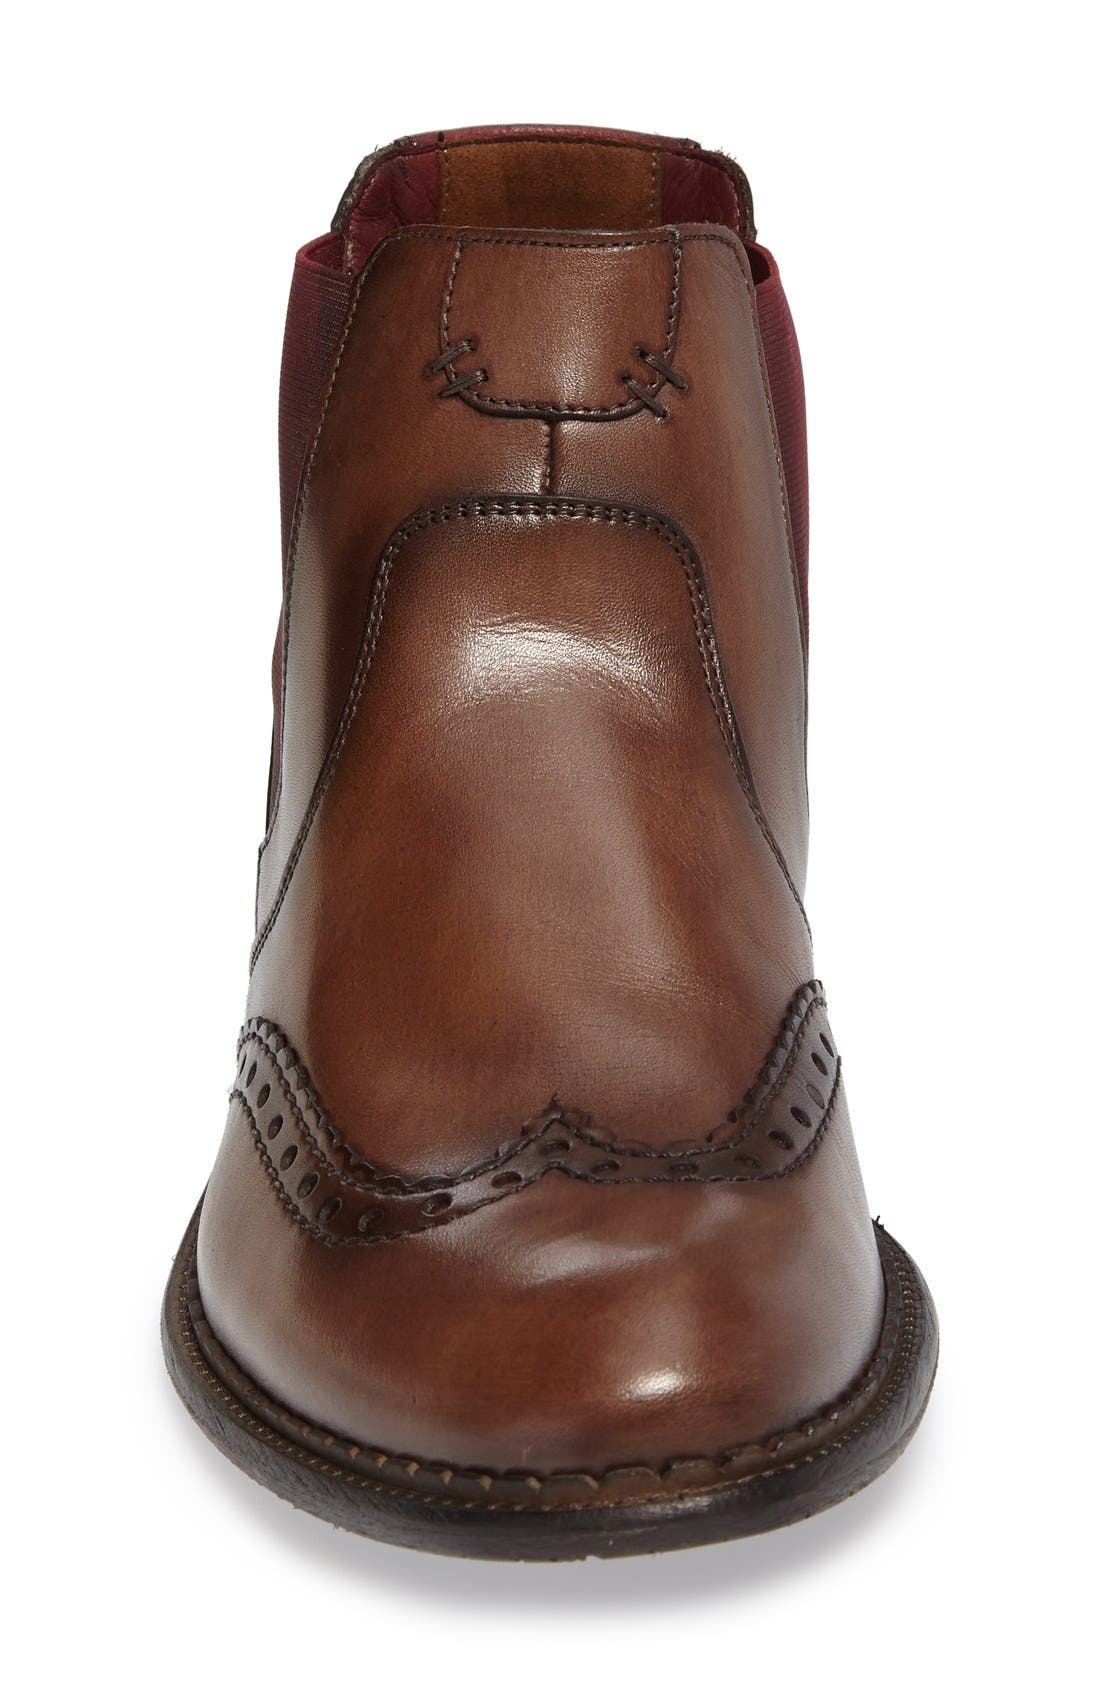 Grenoble Wingtip Chelsea Boot,                             Alternate thumbnail 3, color,                             200